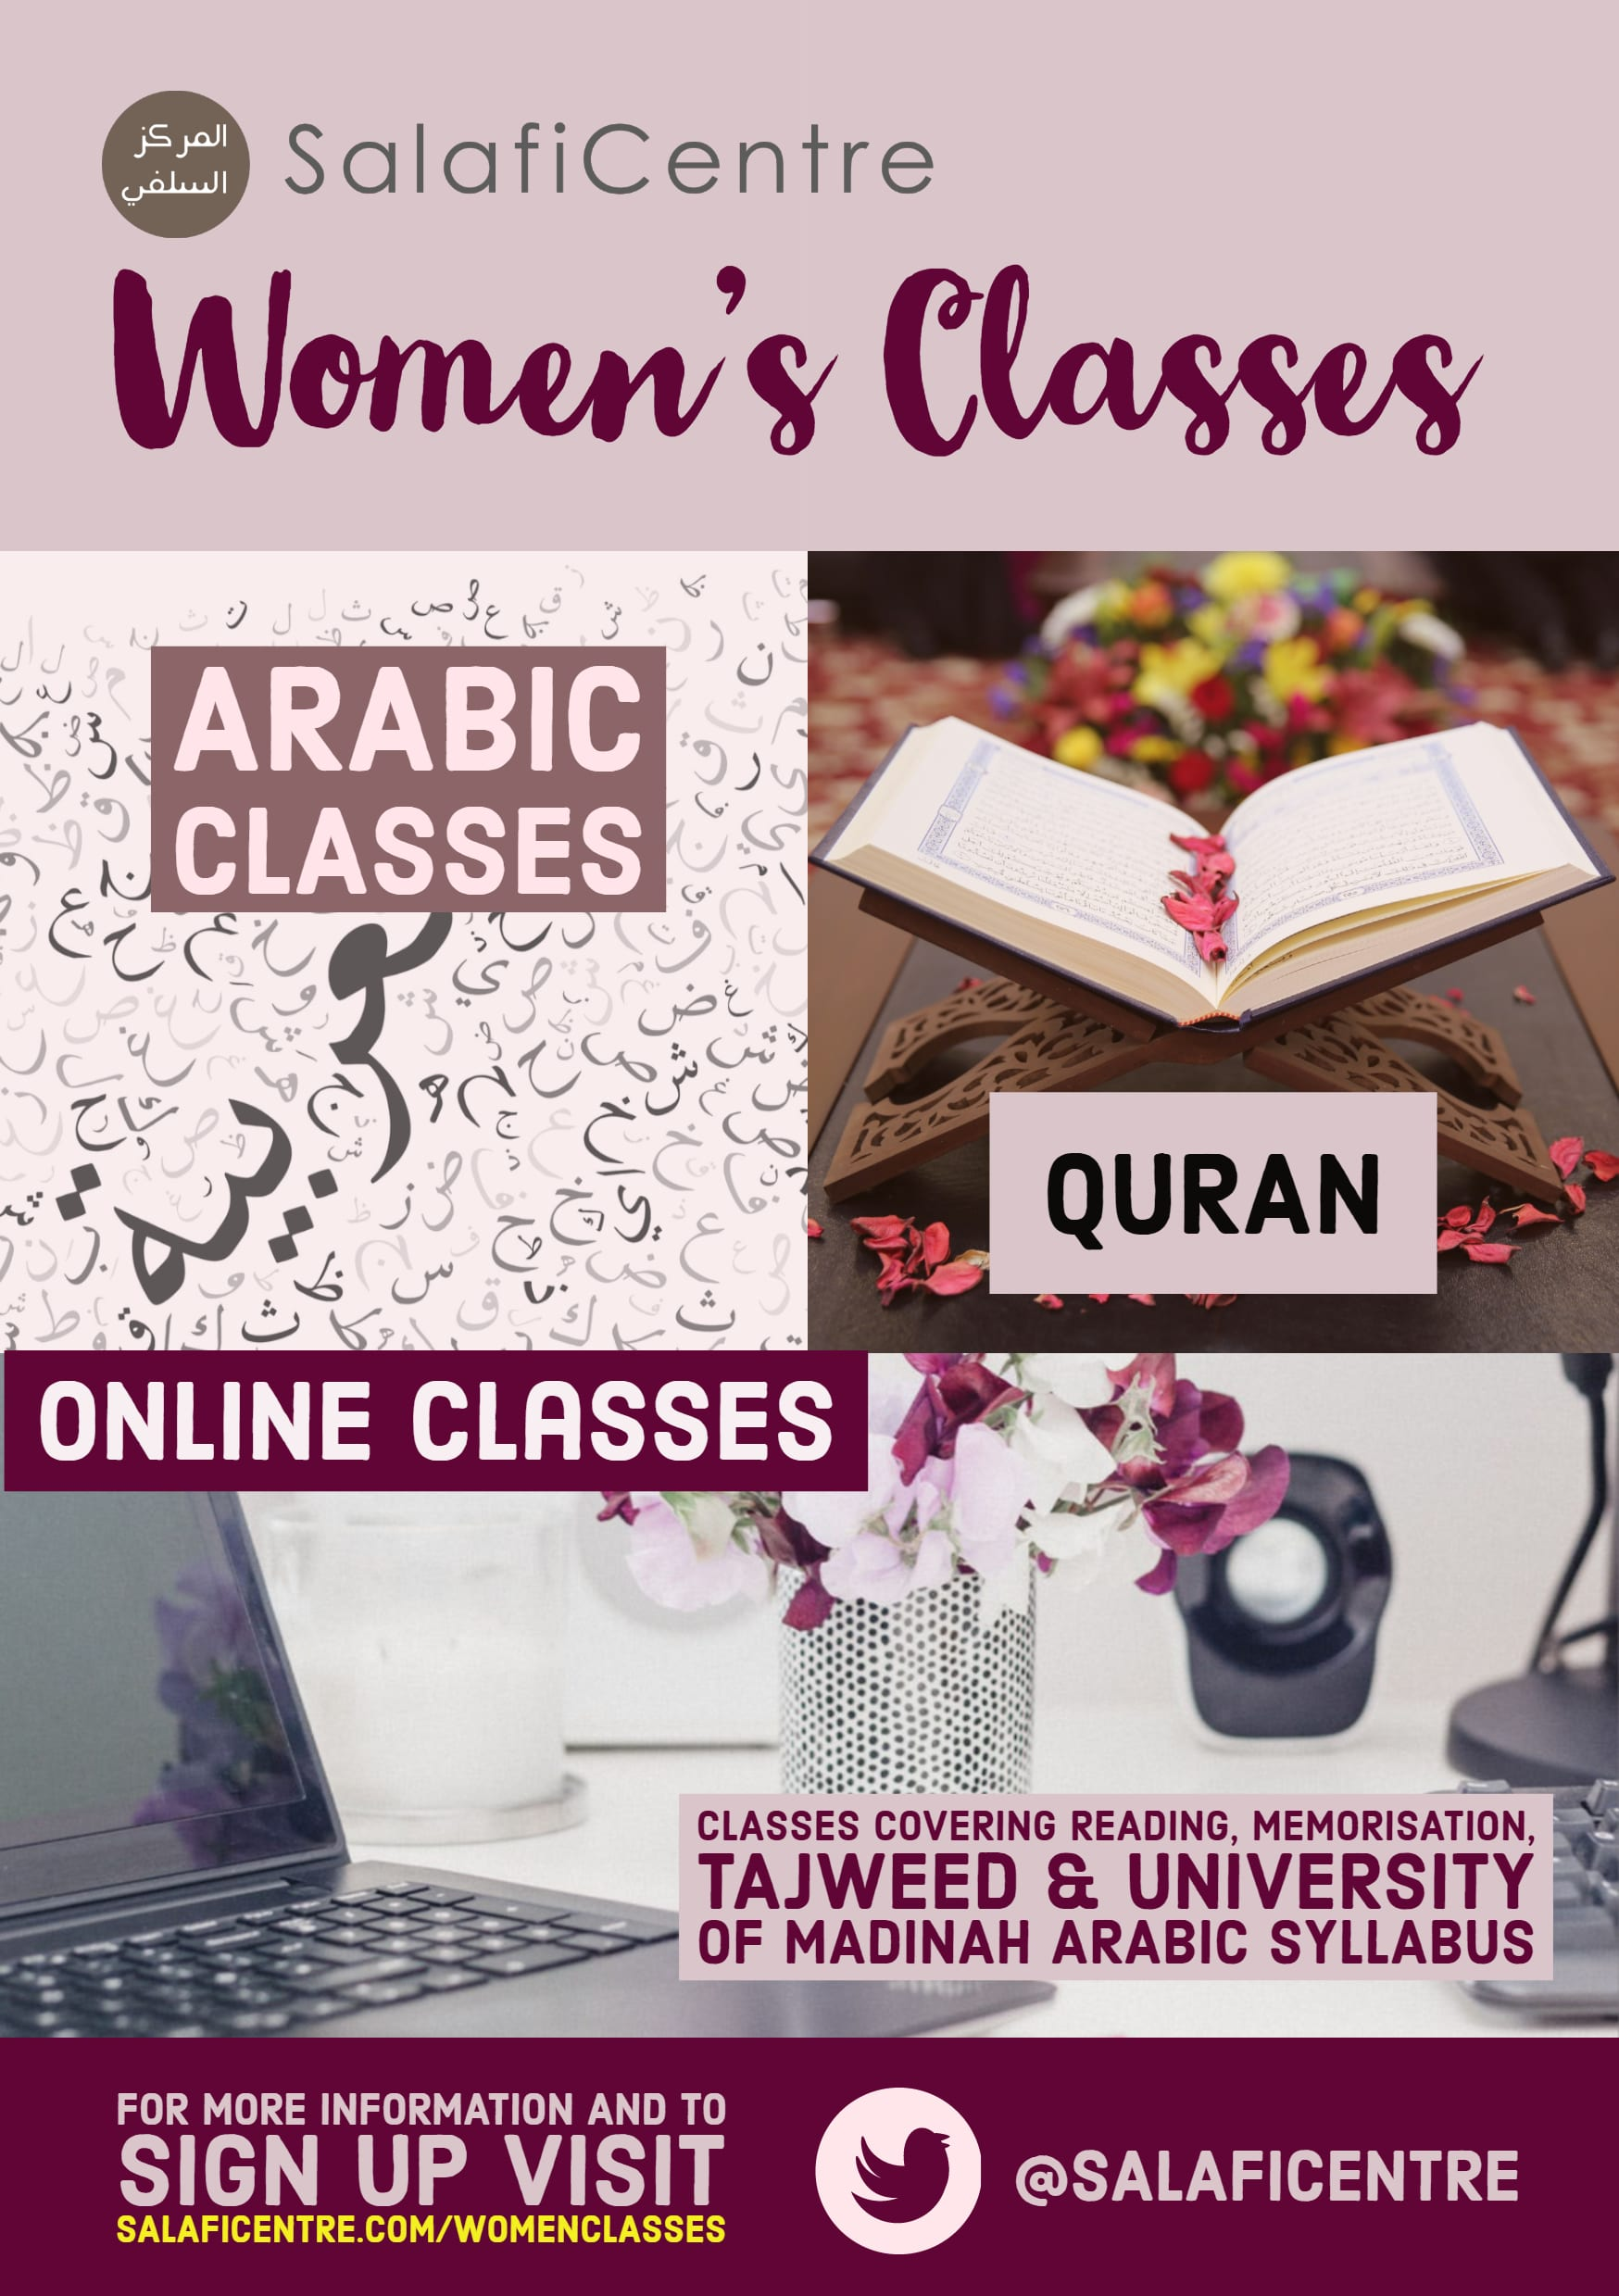 Women's Classes at The Salafi Centre of Manchester